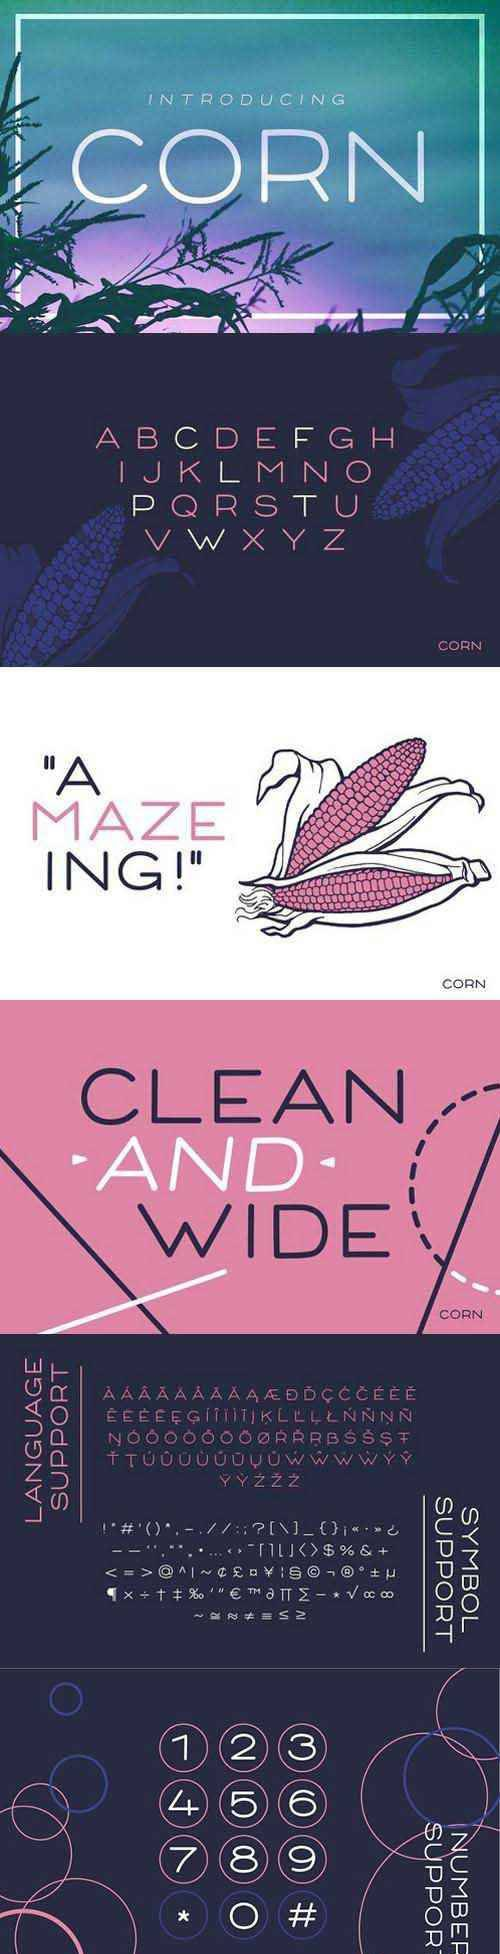 Corn - A clean font with style 1503588